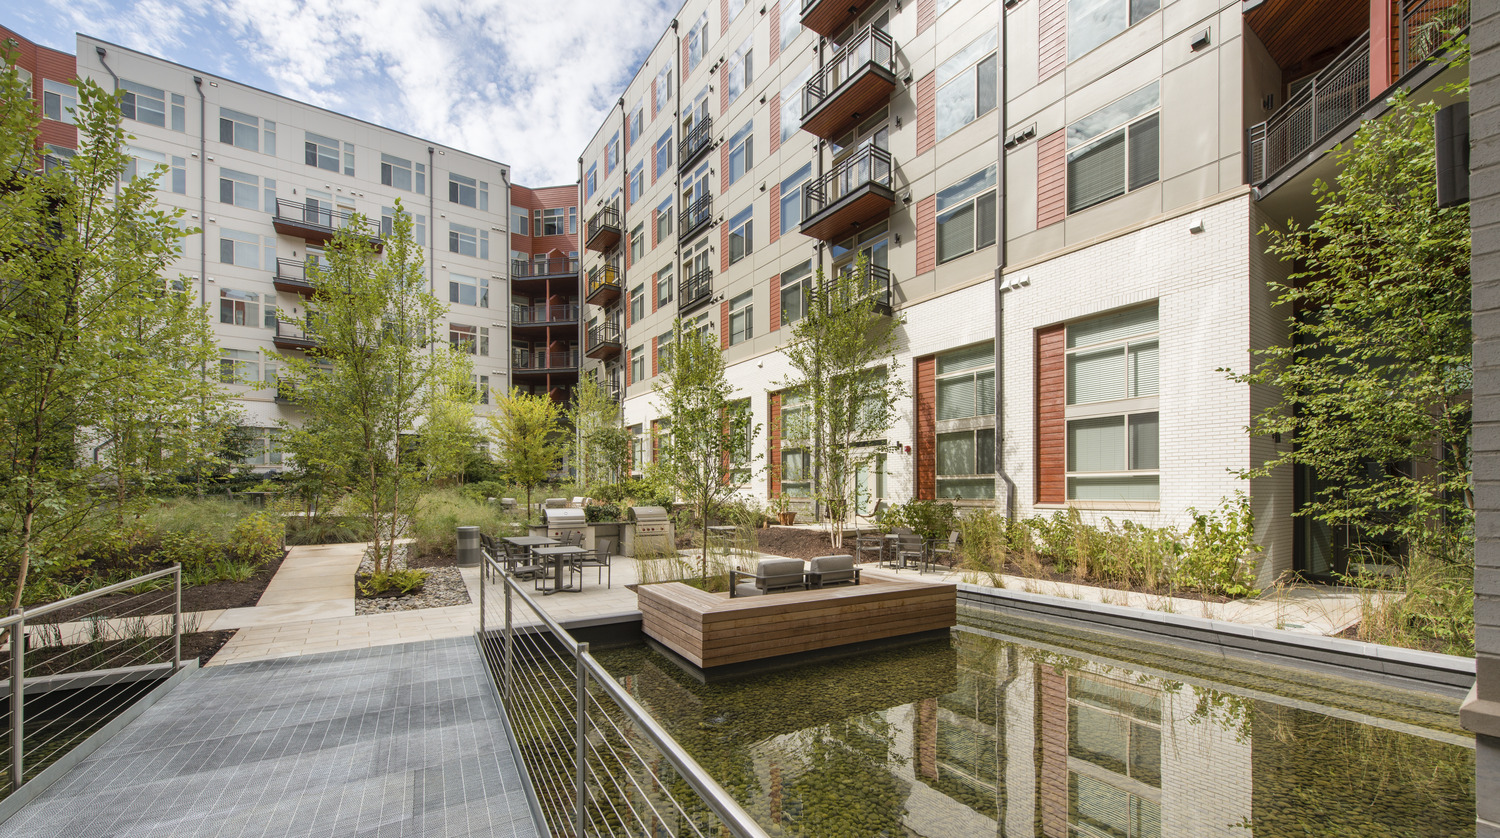 CBG builds Highgate at the Mile, a 395-Unit Mixed-Use Community with Precast Parking Garage in Tysons, VA - Image #5